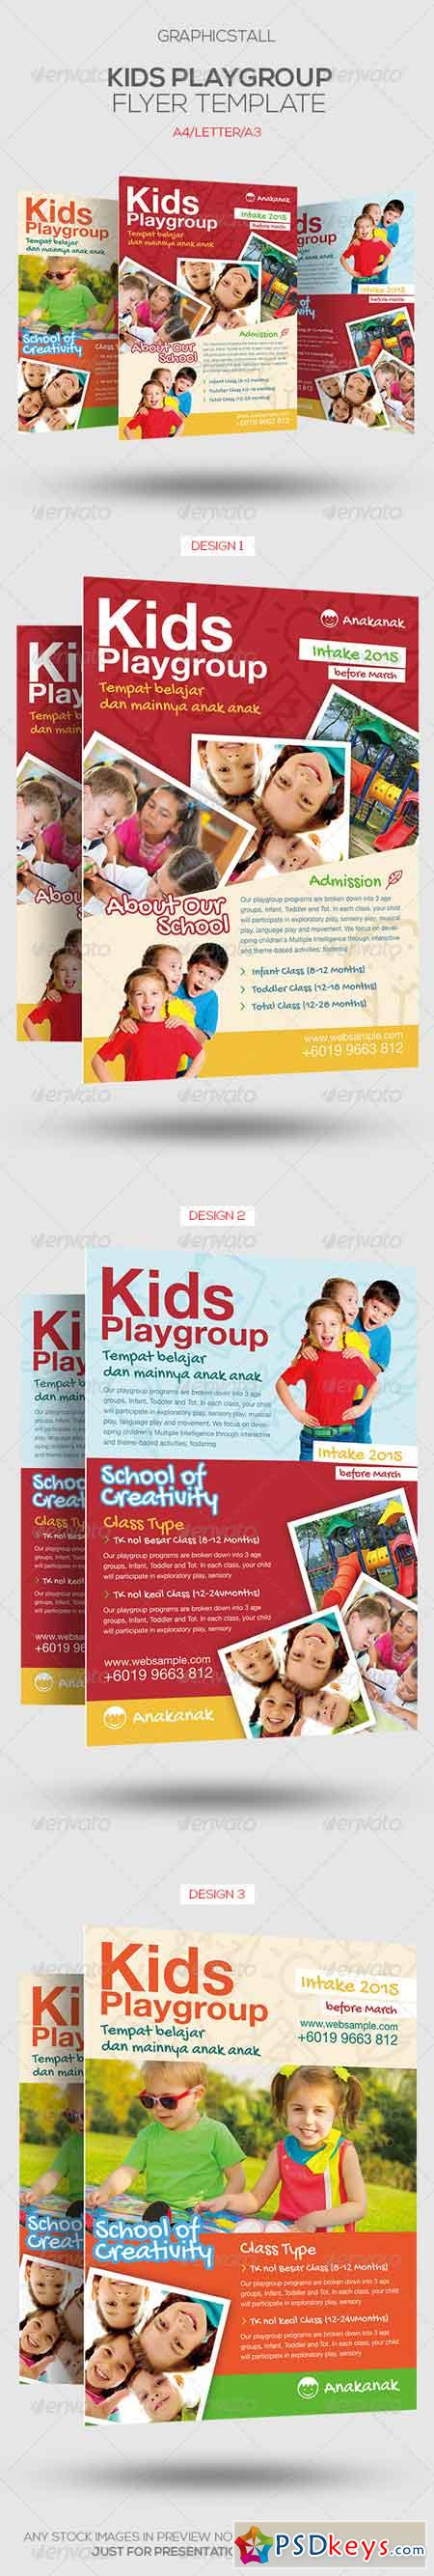 Kids Playgroup Education Flyer 7012988